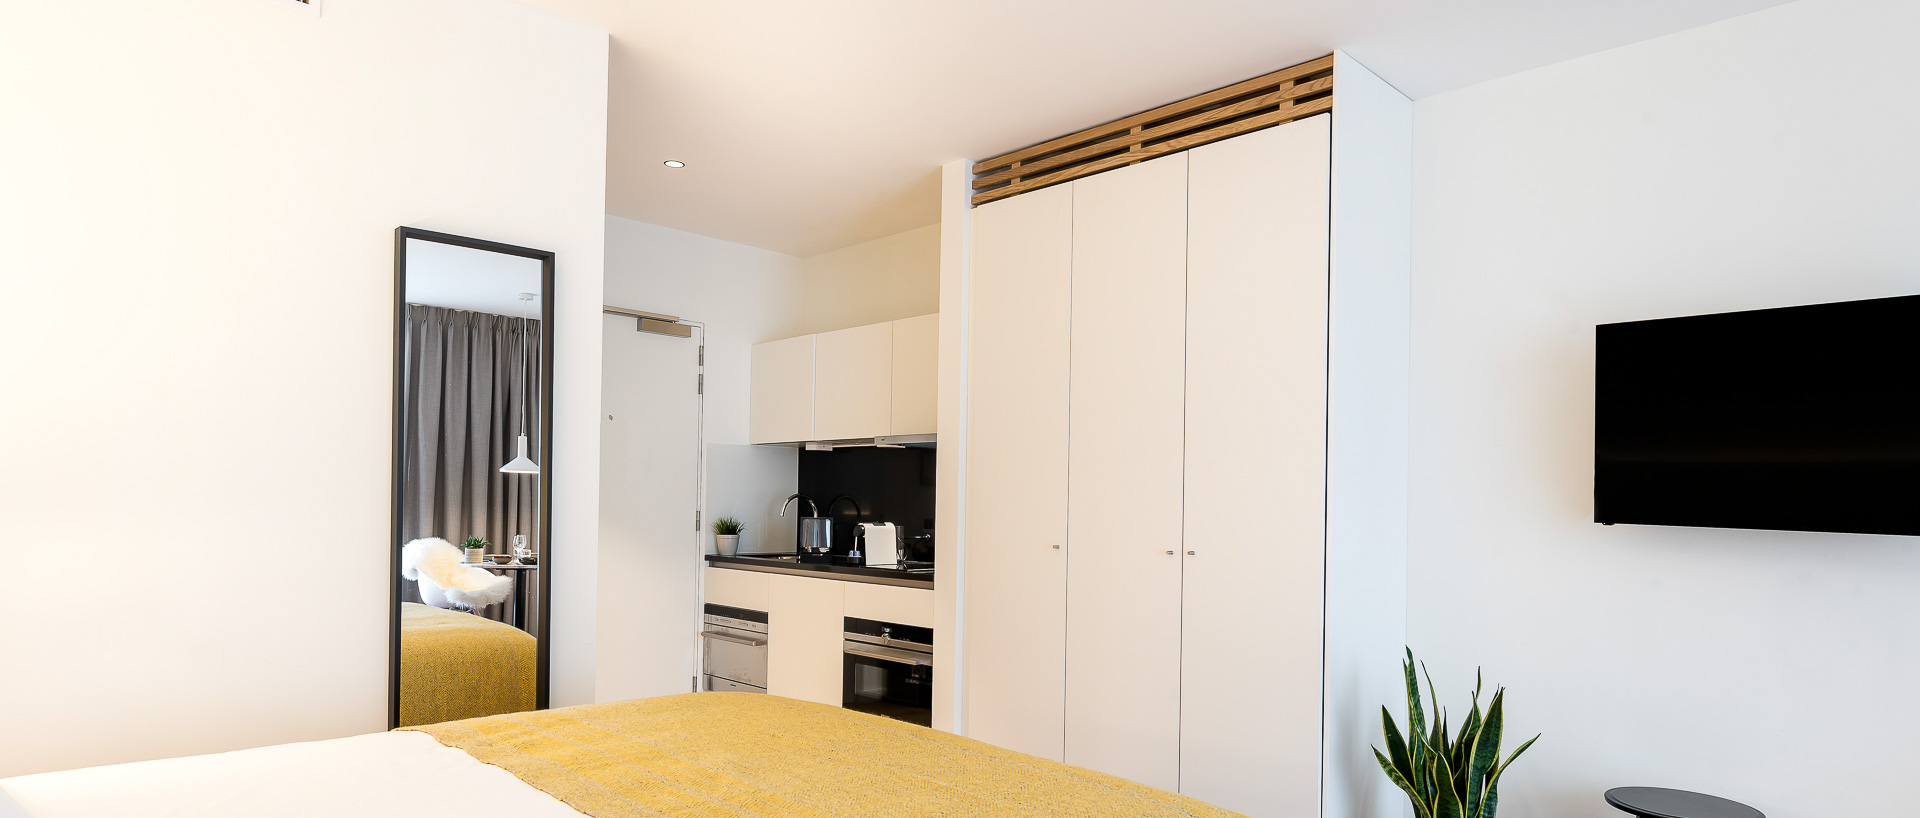 Penthouse studio with kitchenette at  PREMIER SUITES PLUS Antwerp